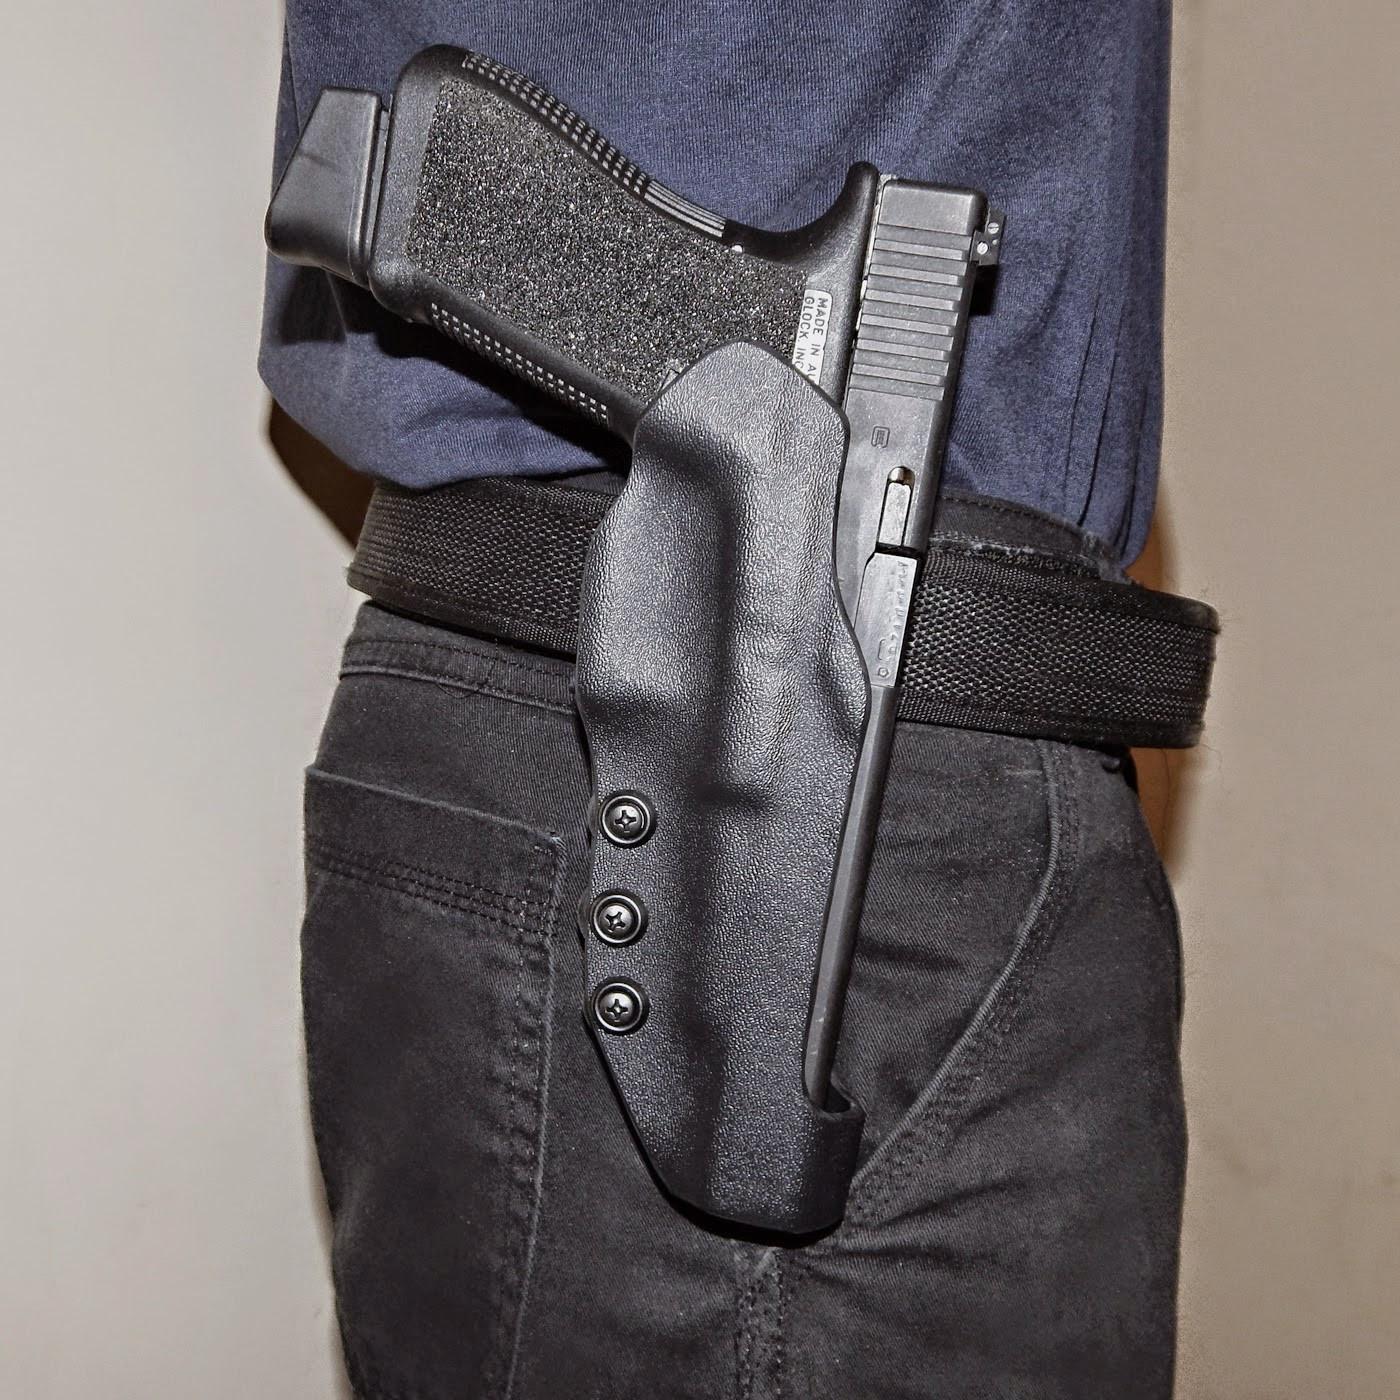 Dara Holsters: New Race Holster from Dara Holsters